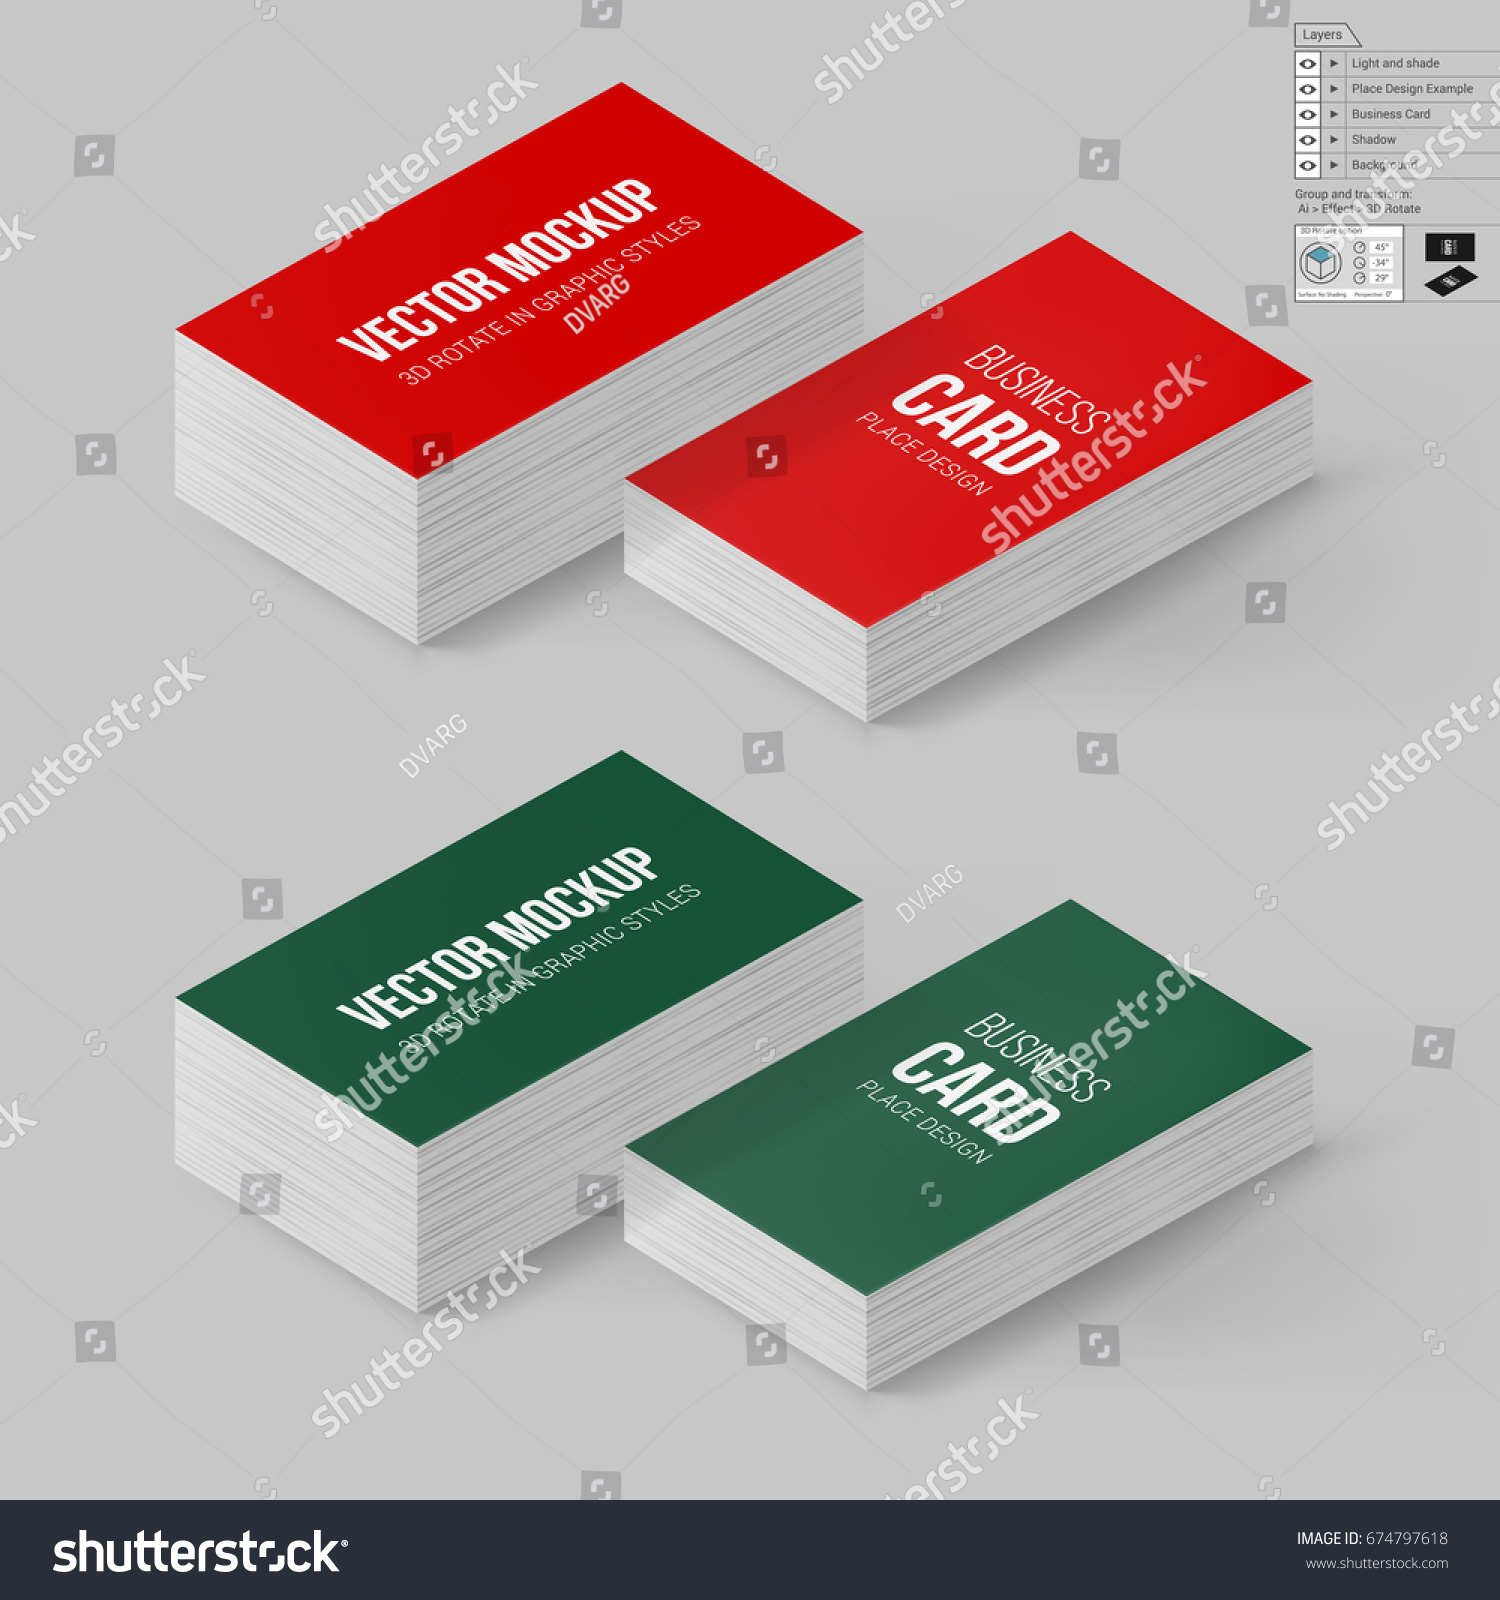 Business cards template red green colors stock vector 674797618 business cards template in red and green colors corporate identity branding mock up with flashek Gallery